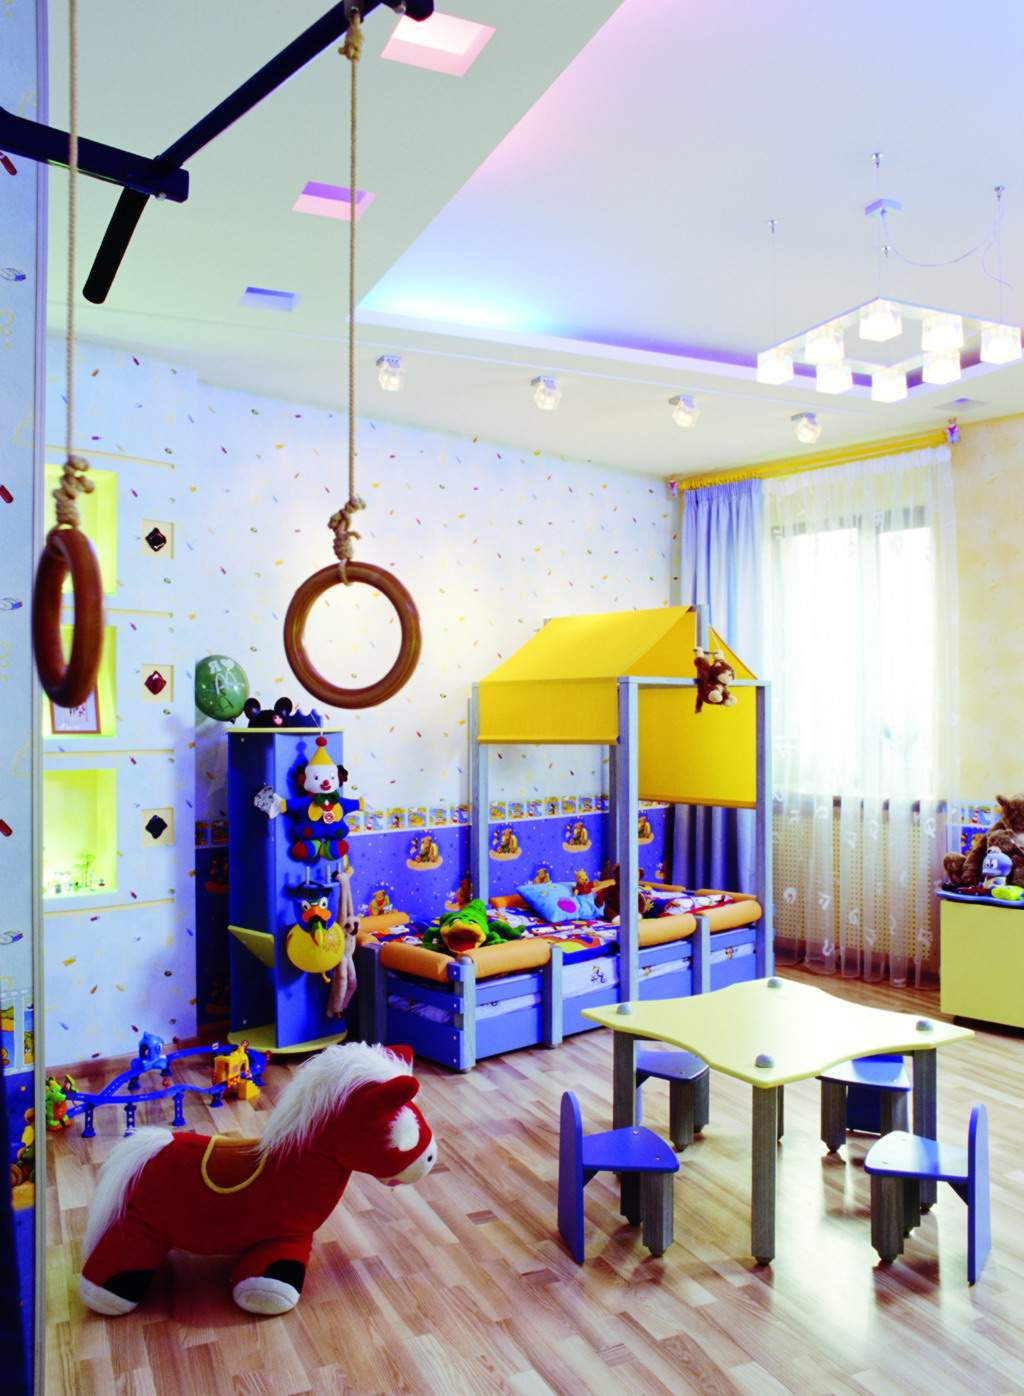 15 creative kids bedroom decorating ideas for Home decor ideas images